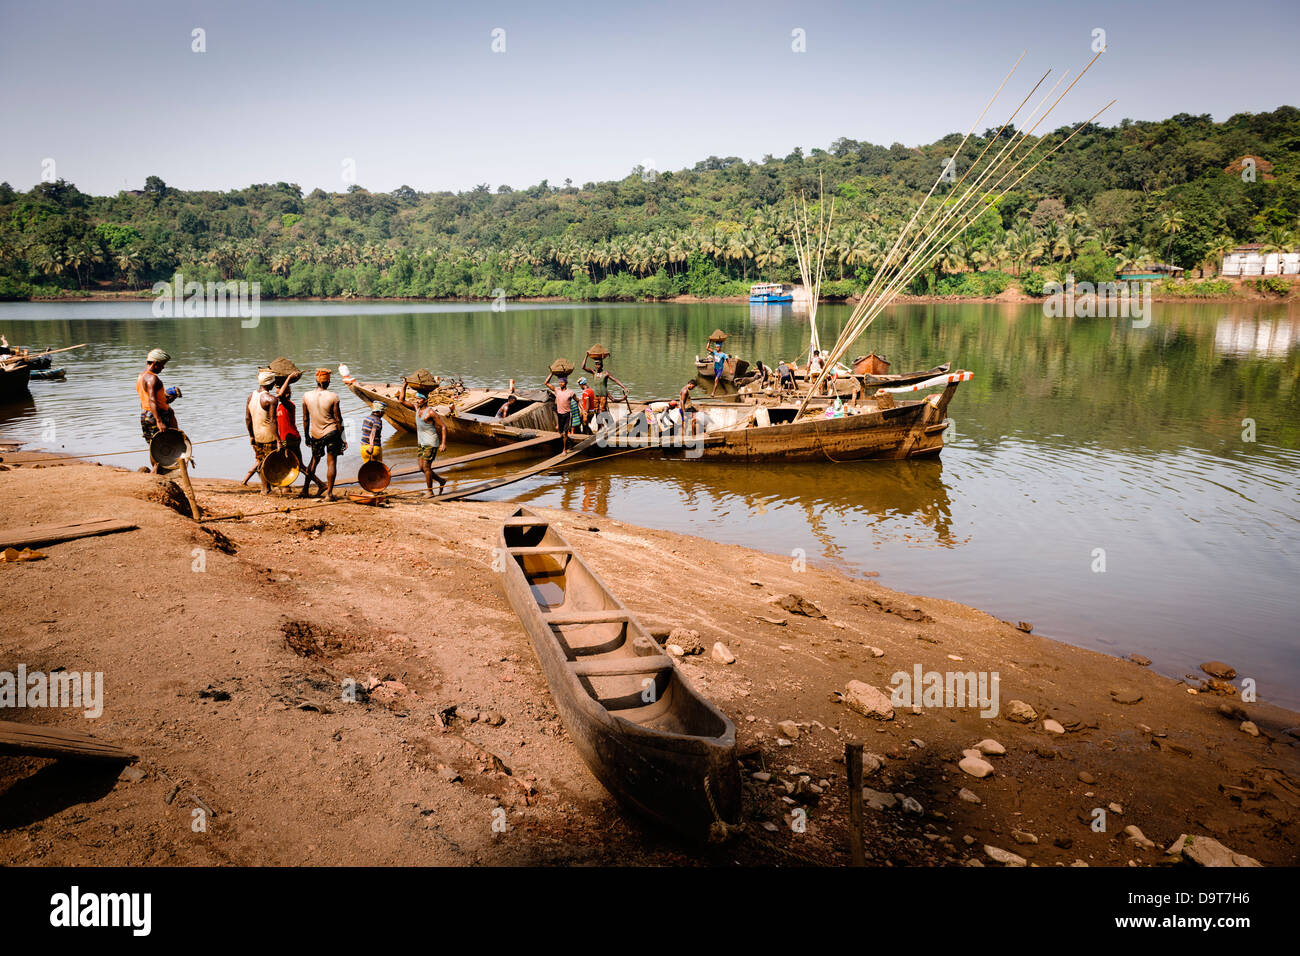 Labourers loading sand off a boat on the Mandovi River by the village Panchayat in Goa, India. - Stock Image